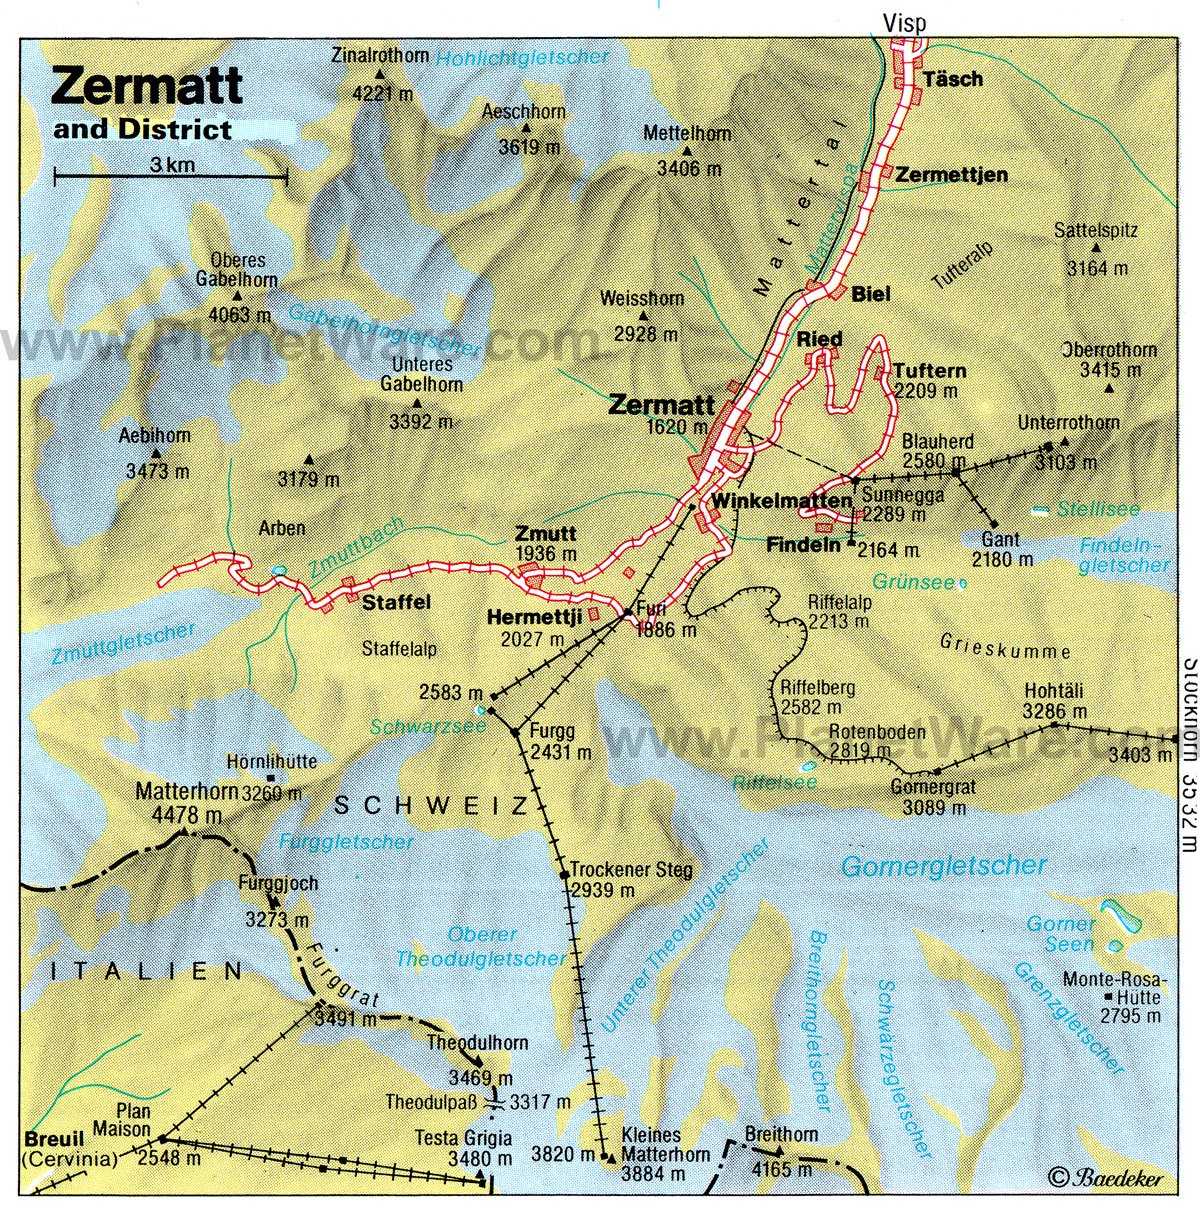 Zermatt and District Map - Tourist Attractions